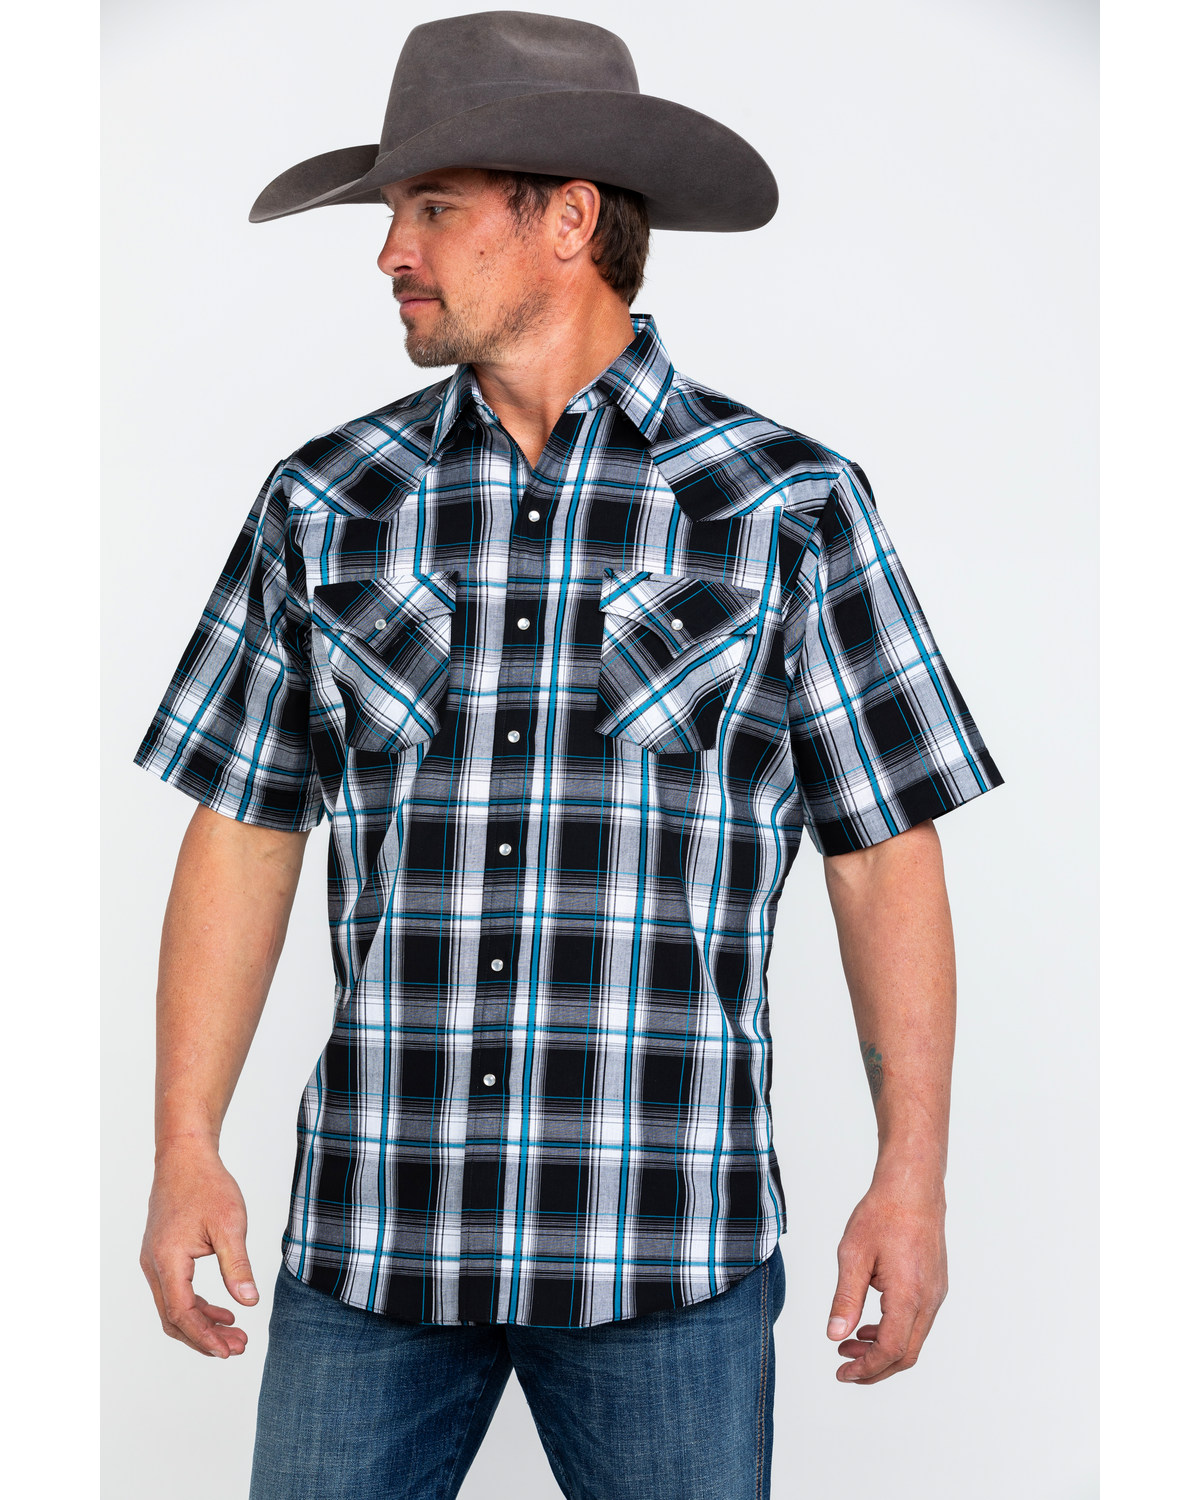 efb4a25e42f17 Mens Short Sleeve Plaid Western Shirts - DREAMWORKS